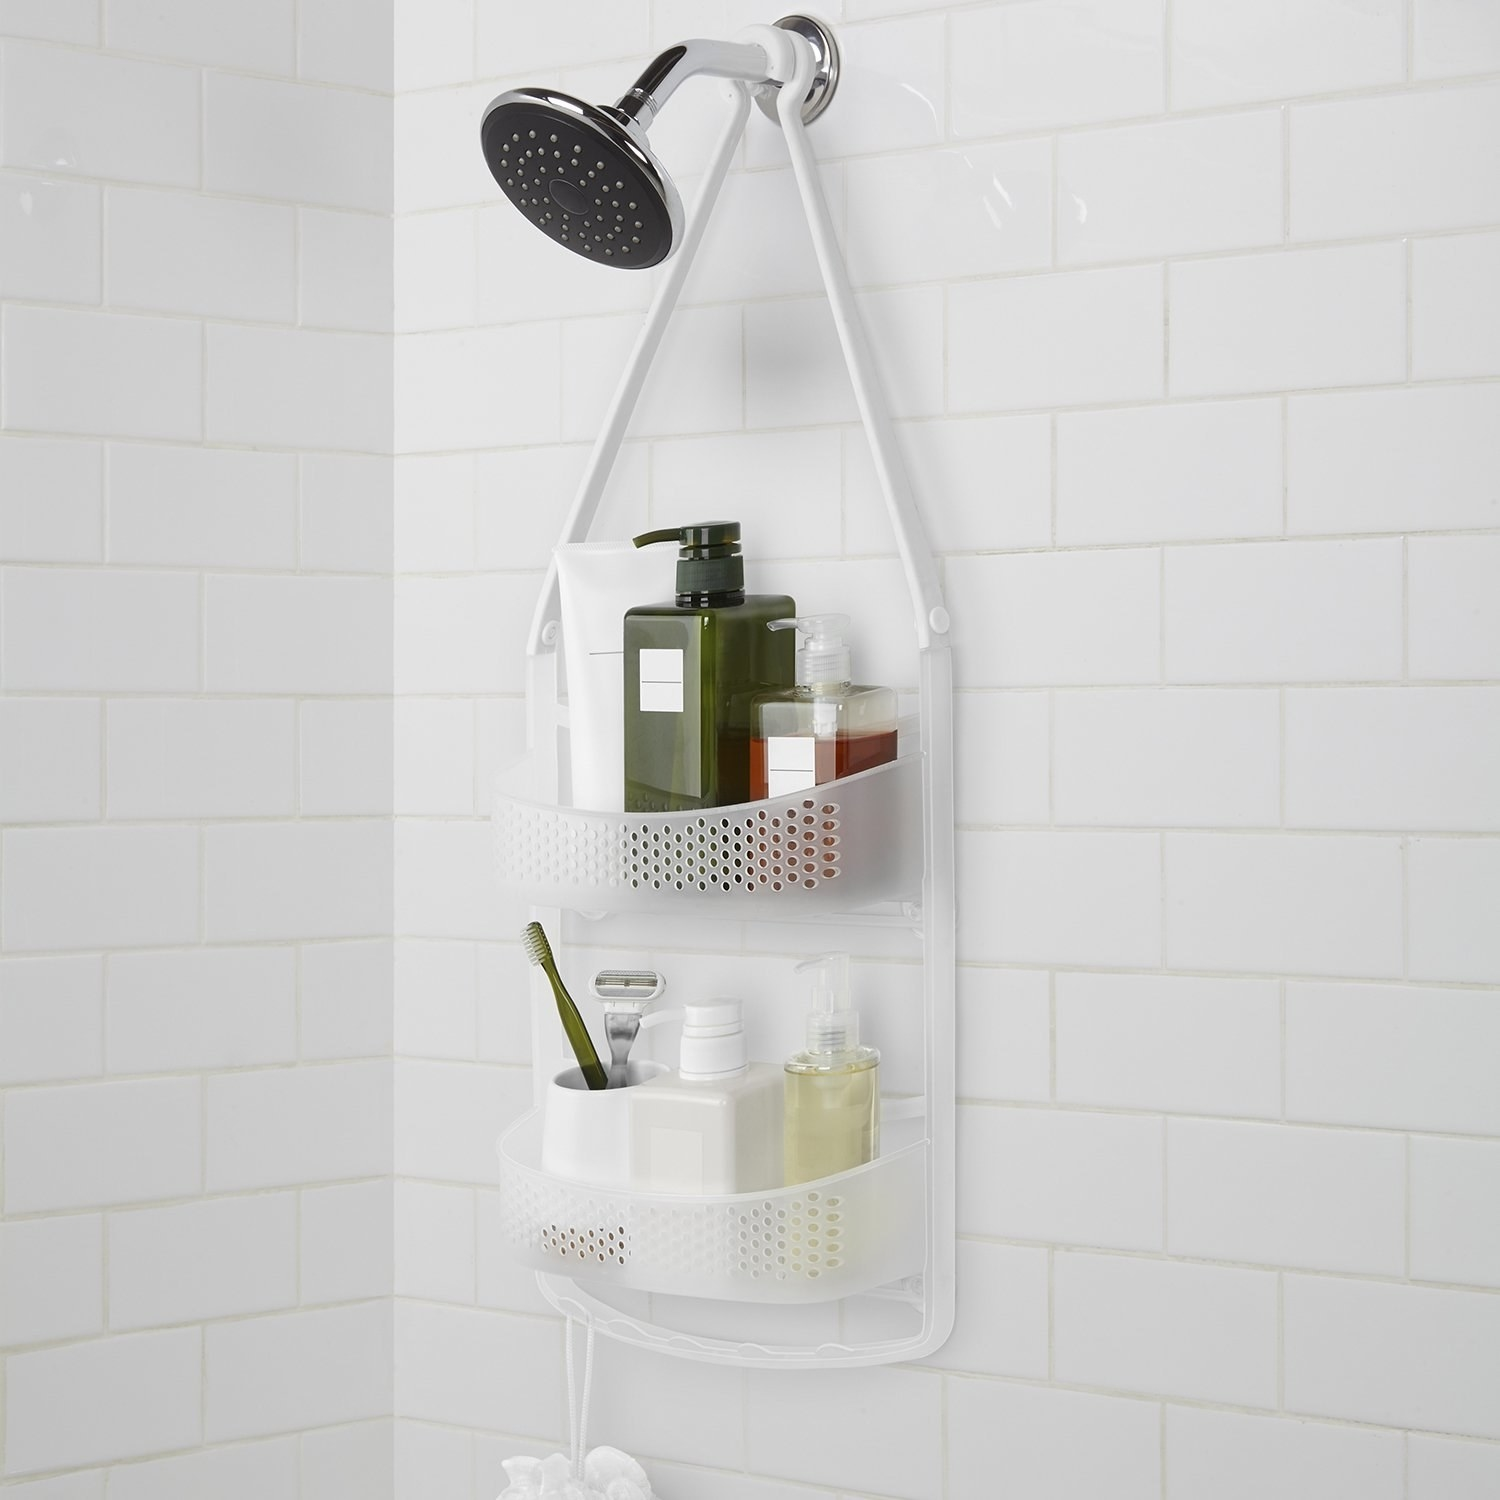 A shower caddy with shampoo, shower gel, a razor and miscellaneous bath essentials hung over a shower head on a white tiled bathroom wall